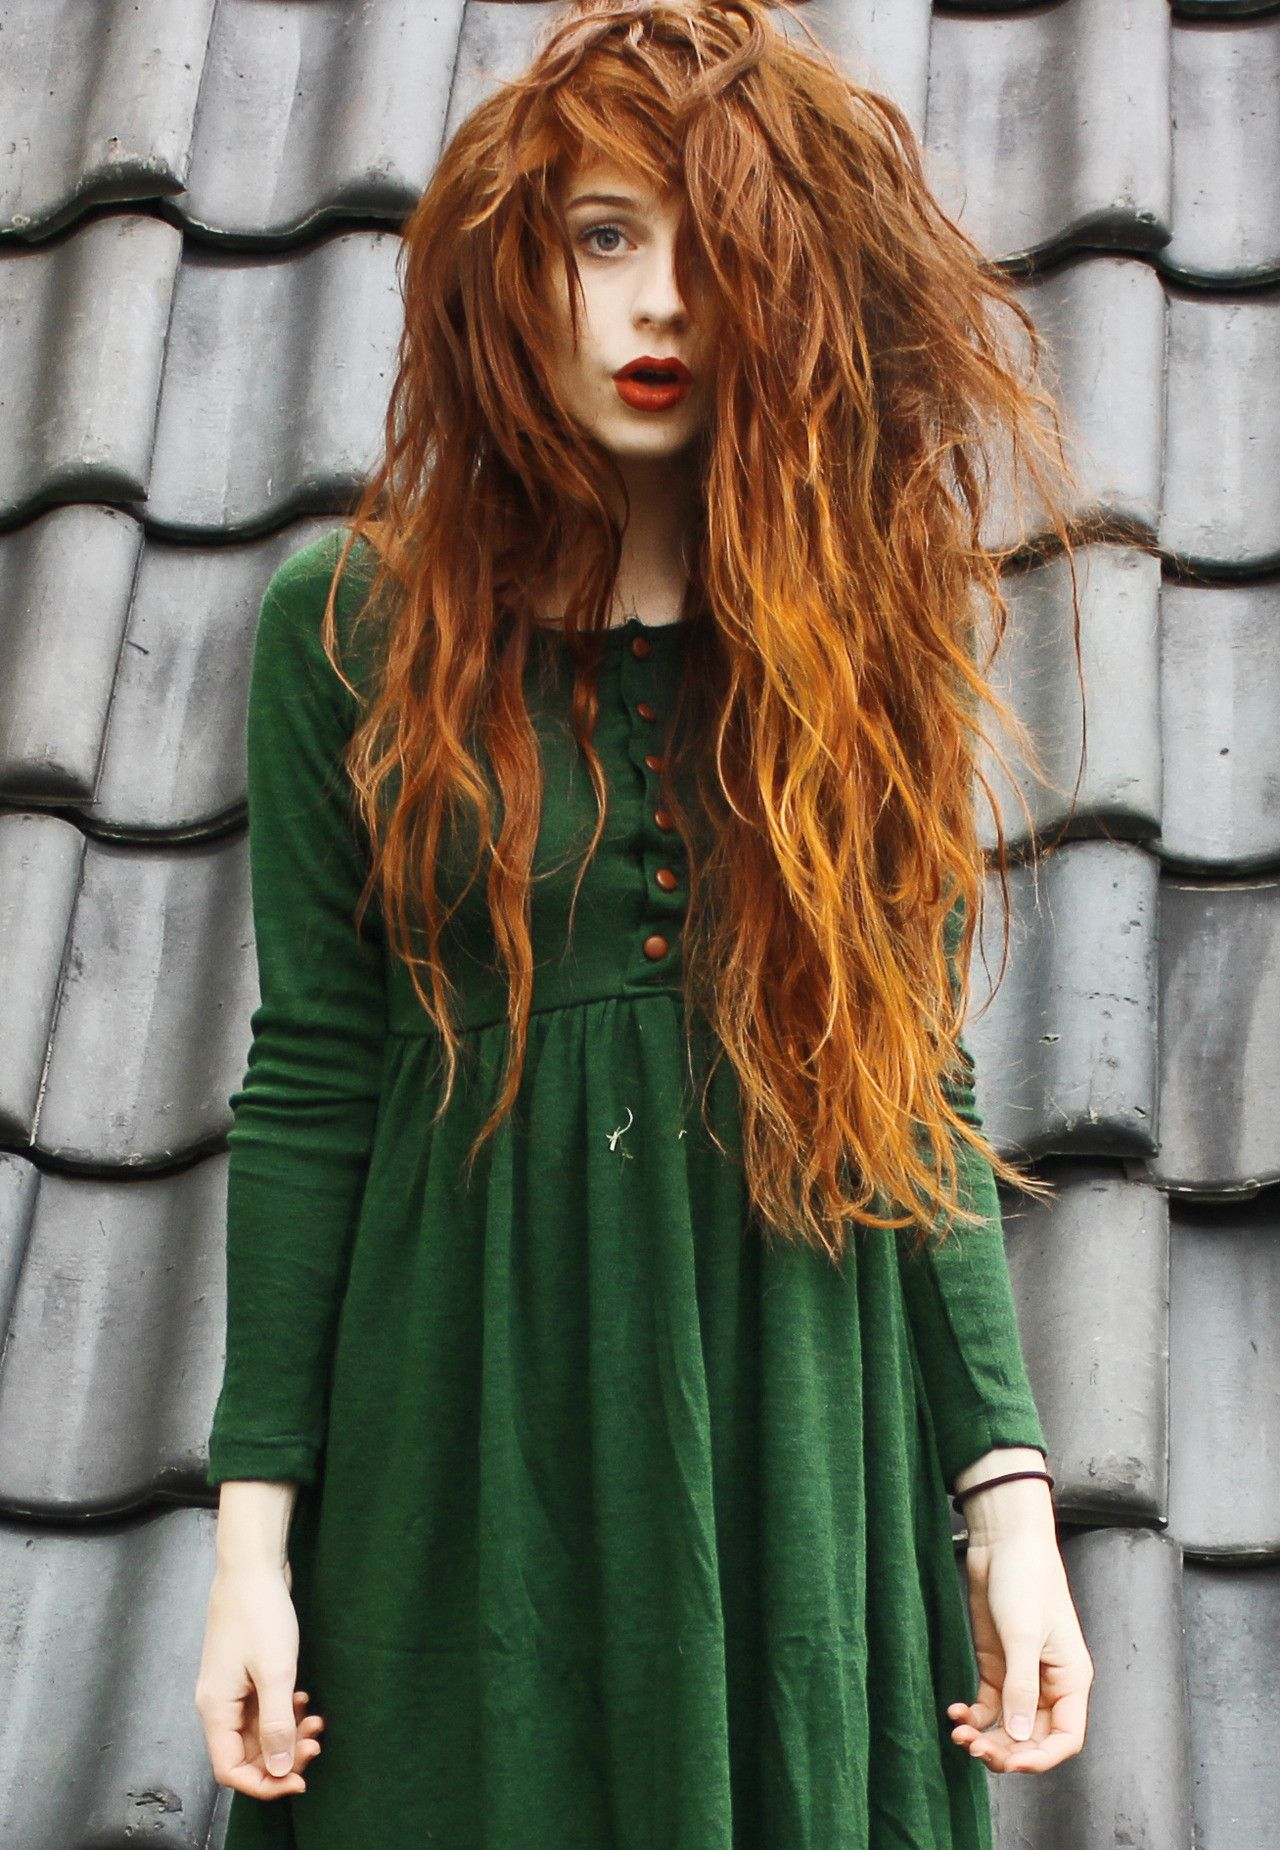 This is nadia esra she has the most amazing hair iuve ever seen